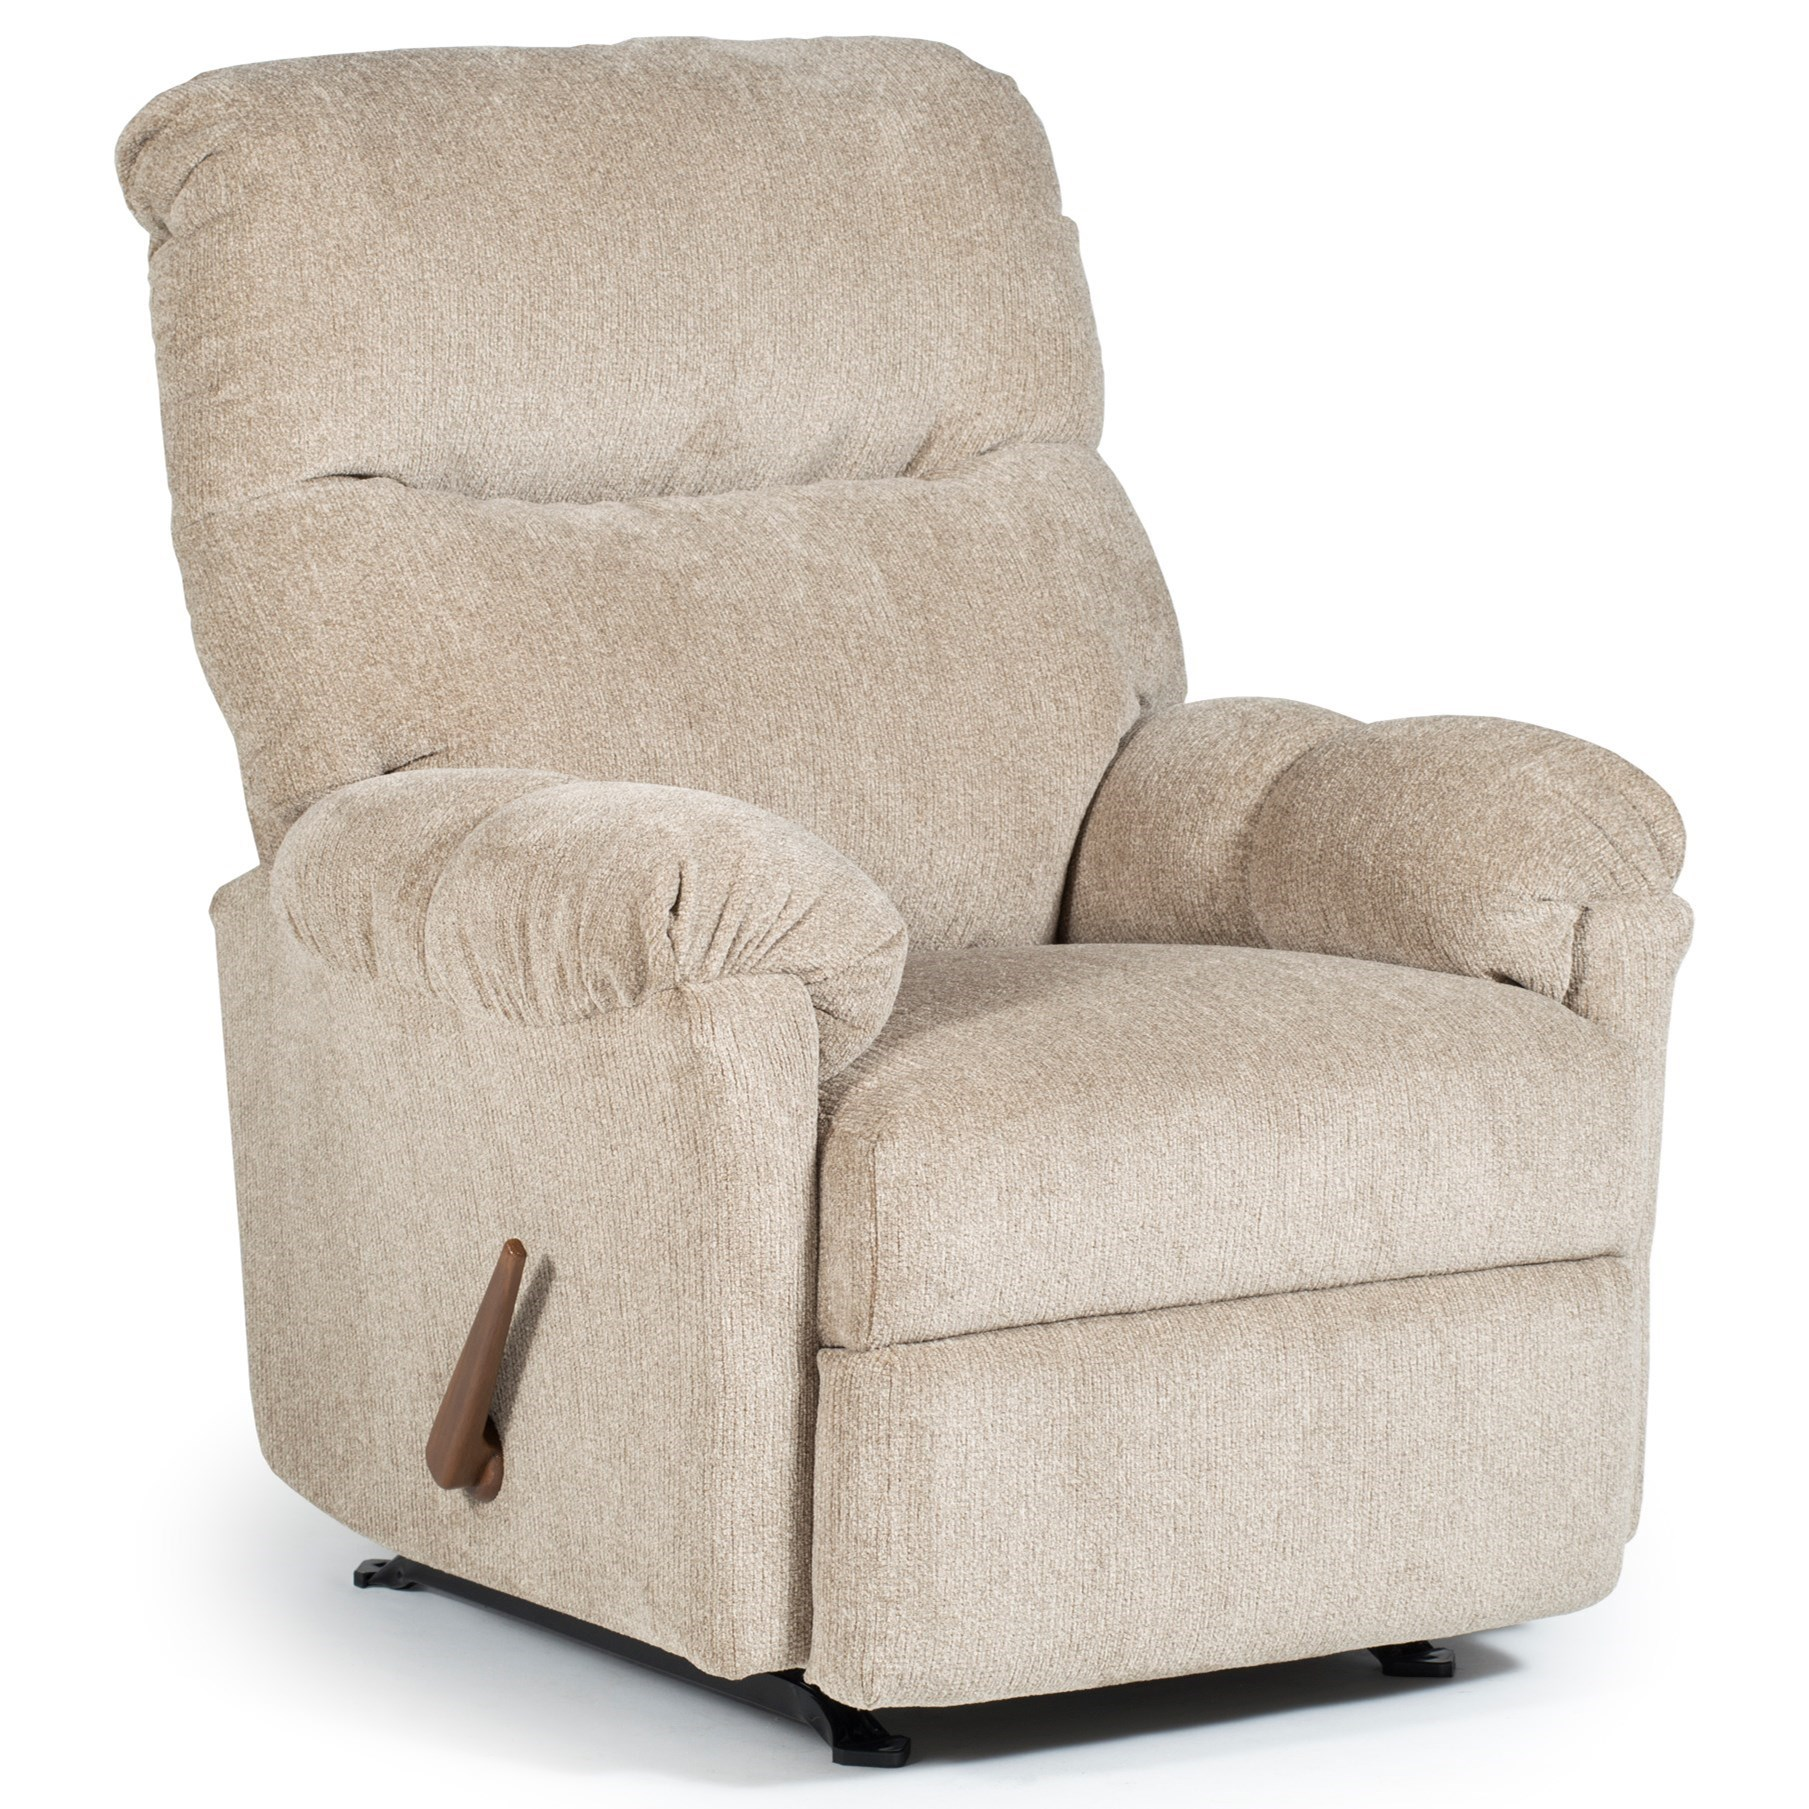 rocking recliner chairs shabby chic chair best home furnishings medium recliners balmore swivel